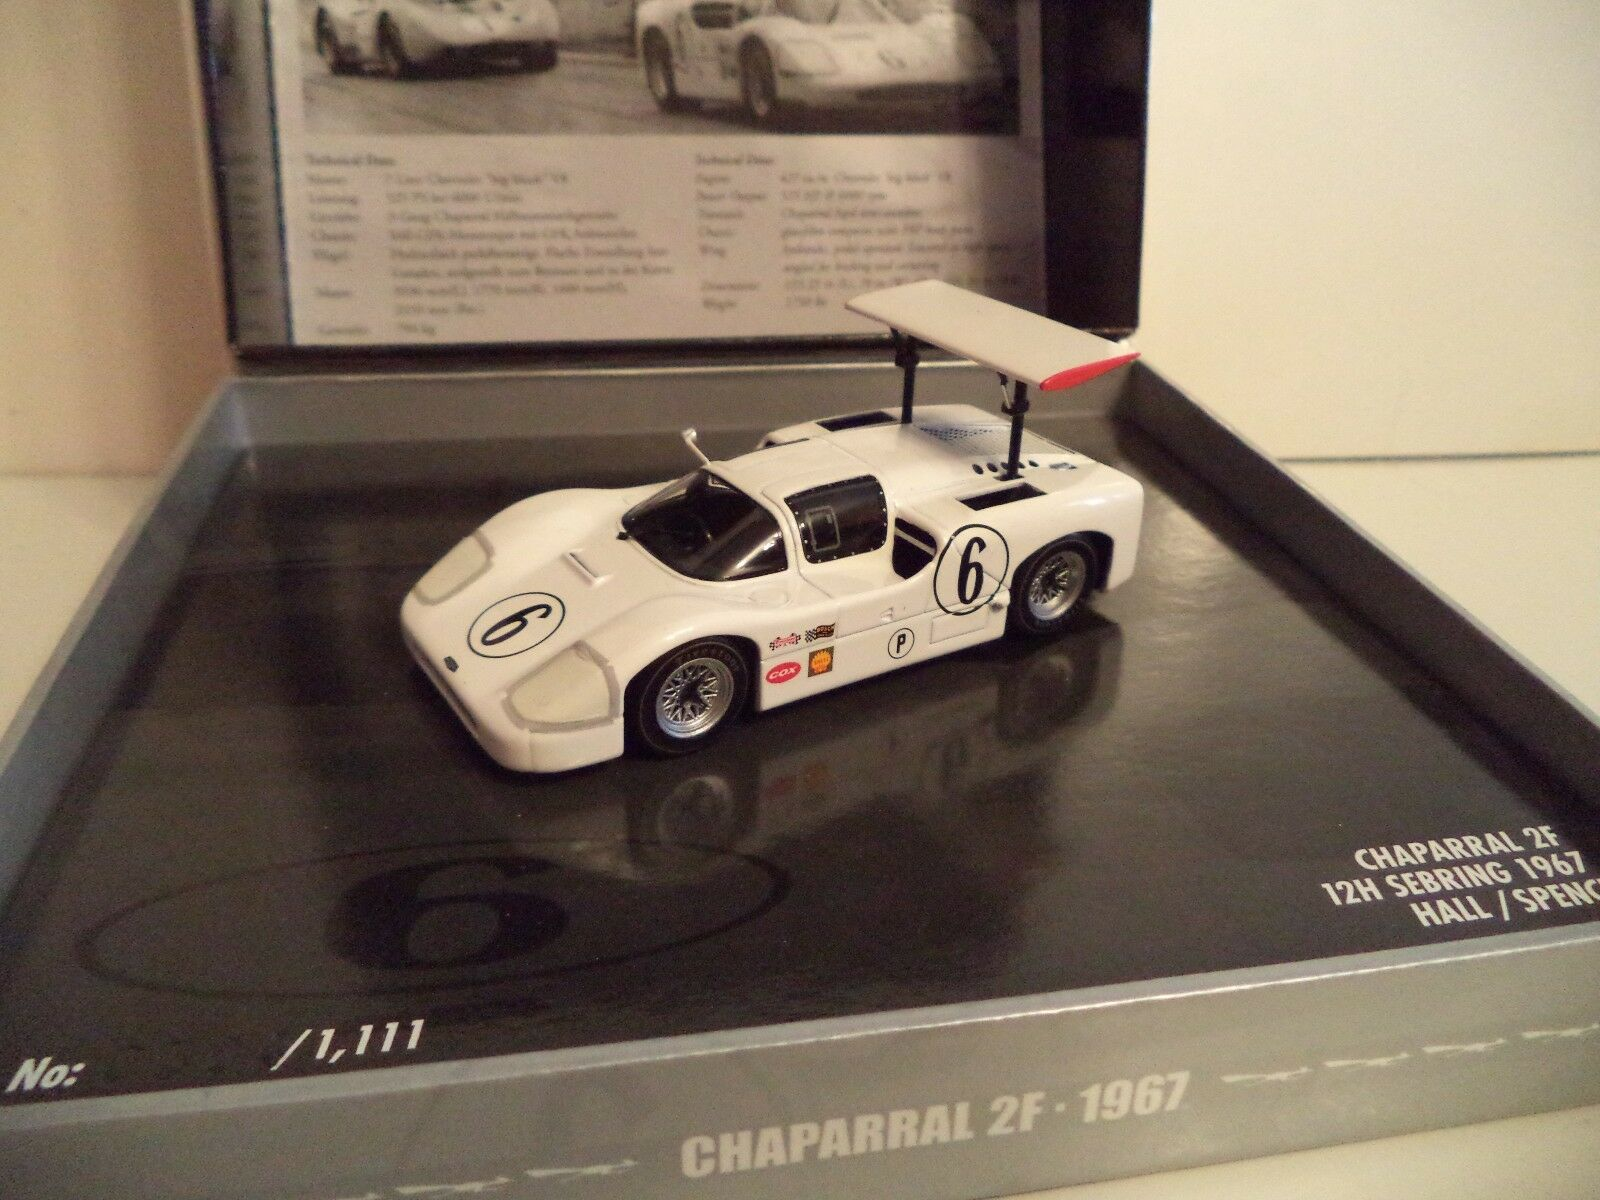 MINICHAMPS CHAPPARRAL 2F 12HR SEBRING 1967 EDITION 8   1/43RD SCALE    IN  BOX.